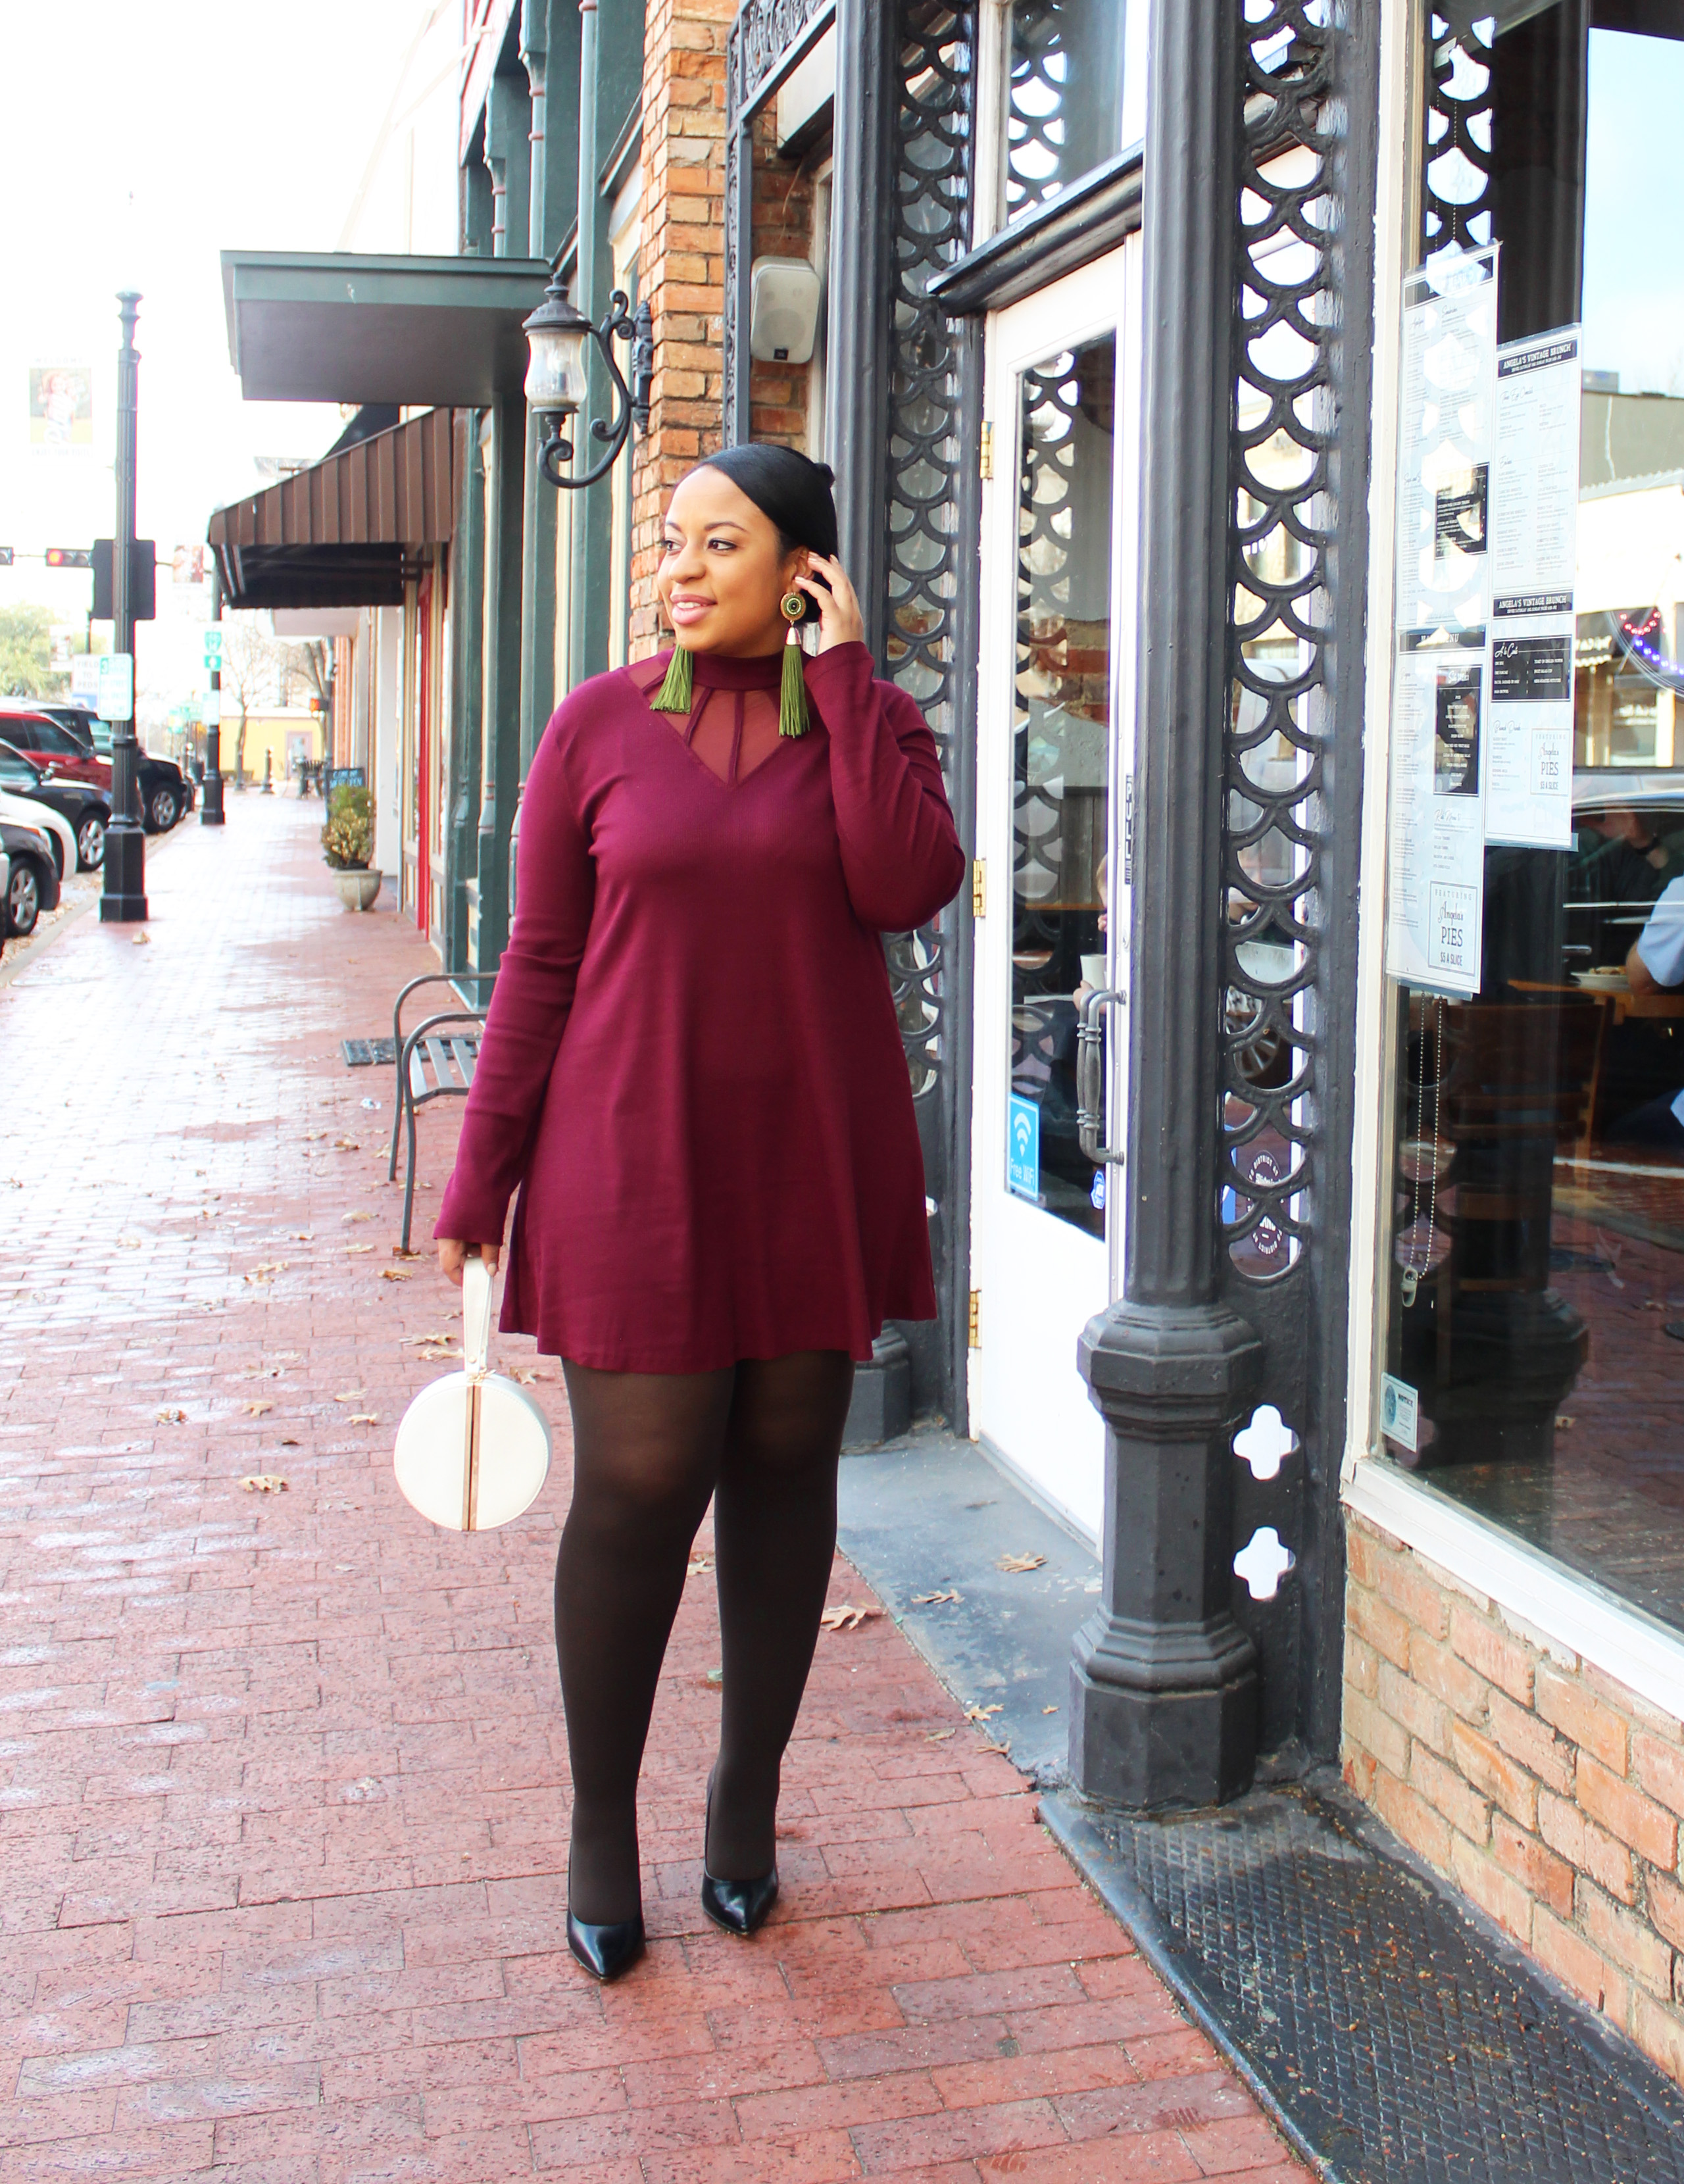 Quick Guide: Affordable Fashion Tips